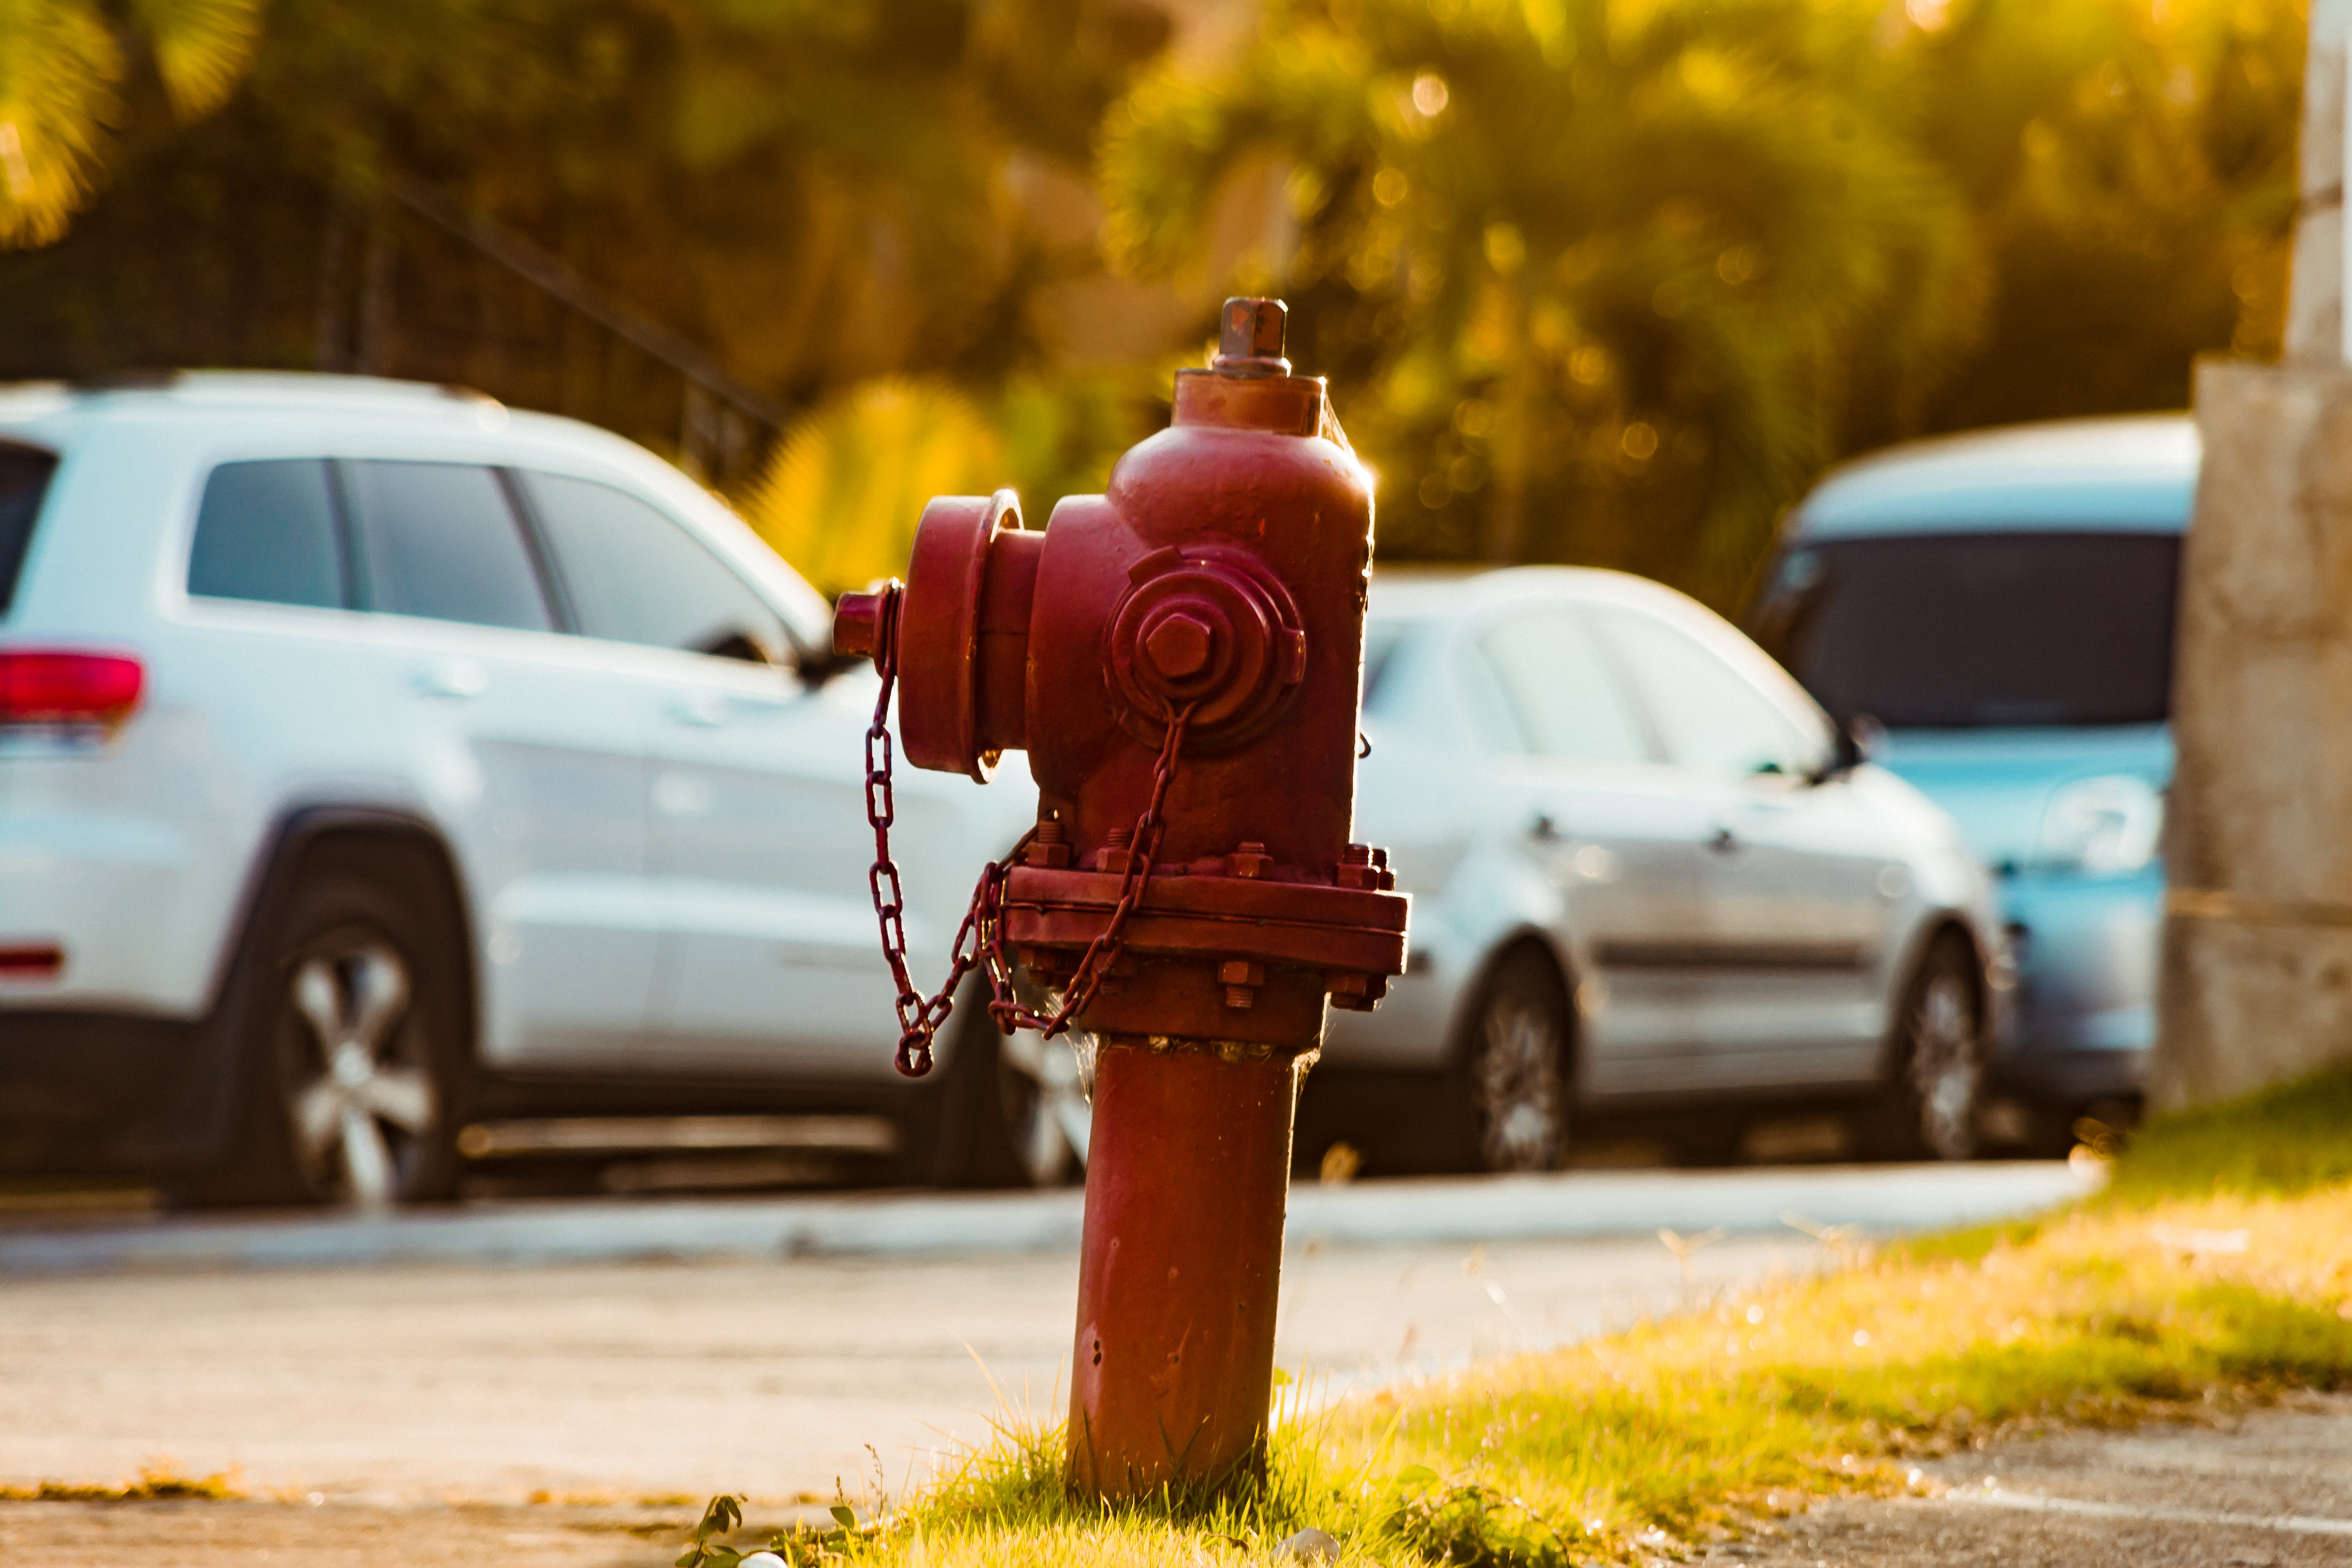 Photography of Red Fire Hydrant